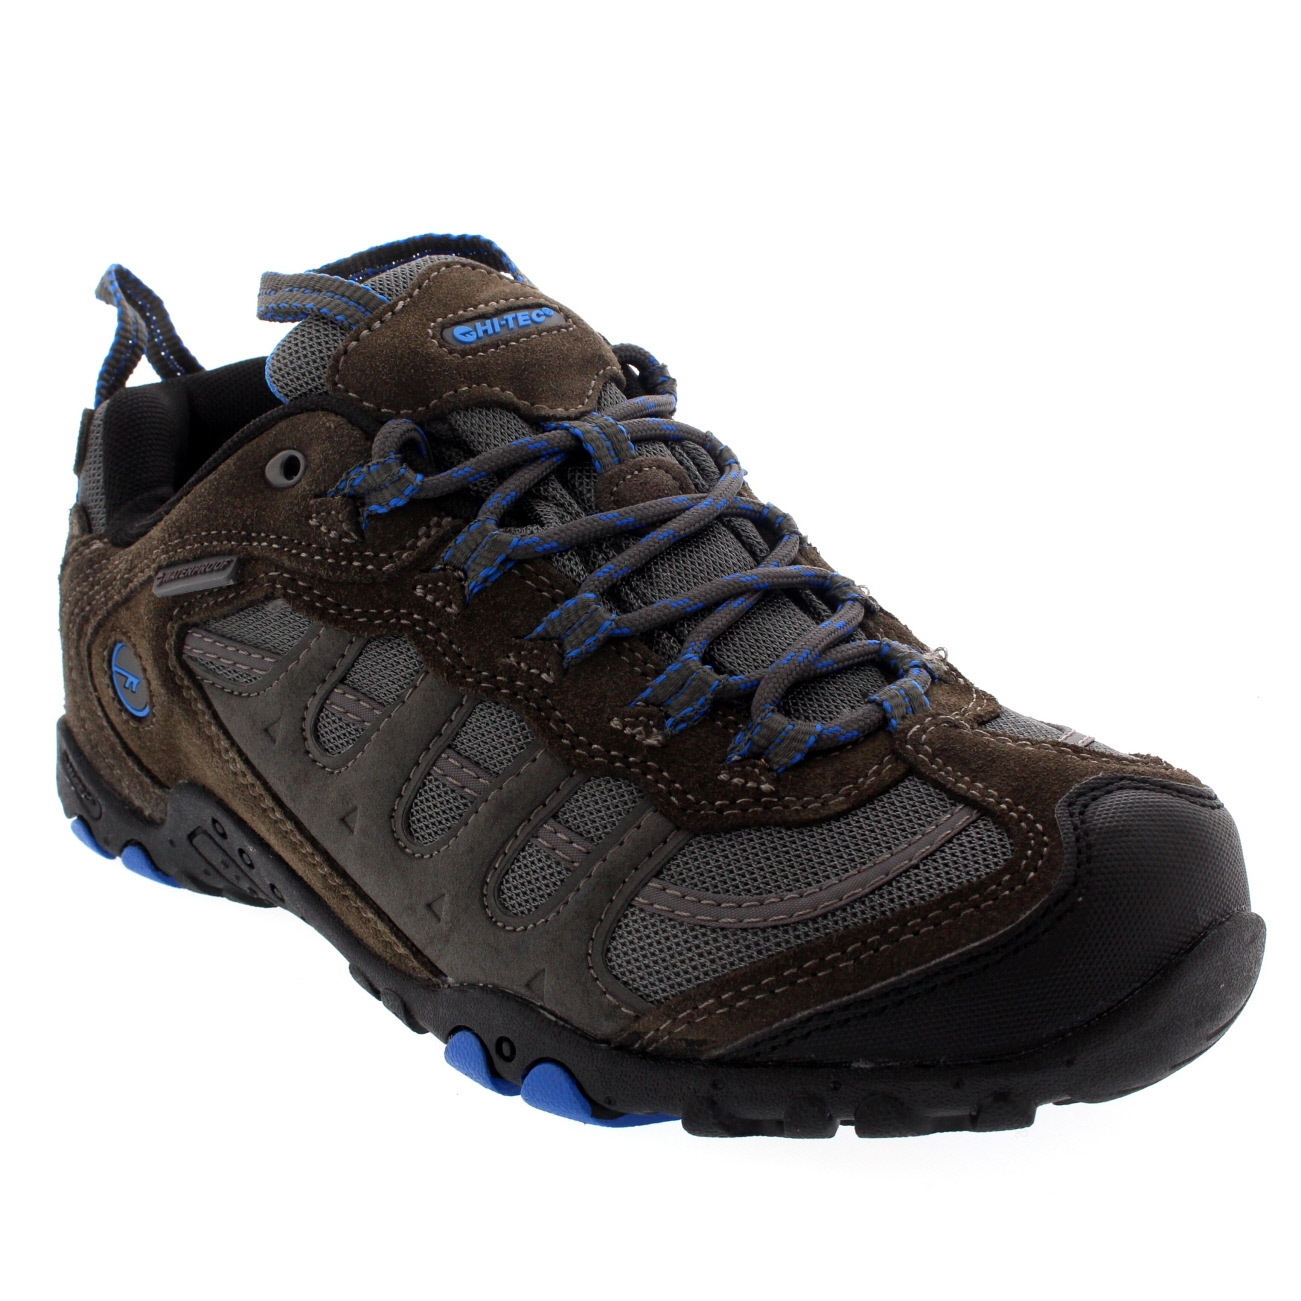 Mens Hi-Tec Penrith Low Hiking Walking Waterproof Outdoors Trail Sneaker